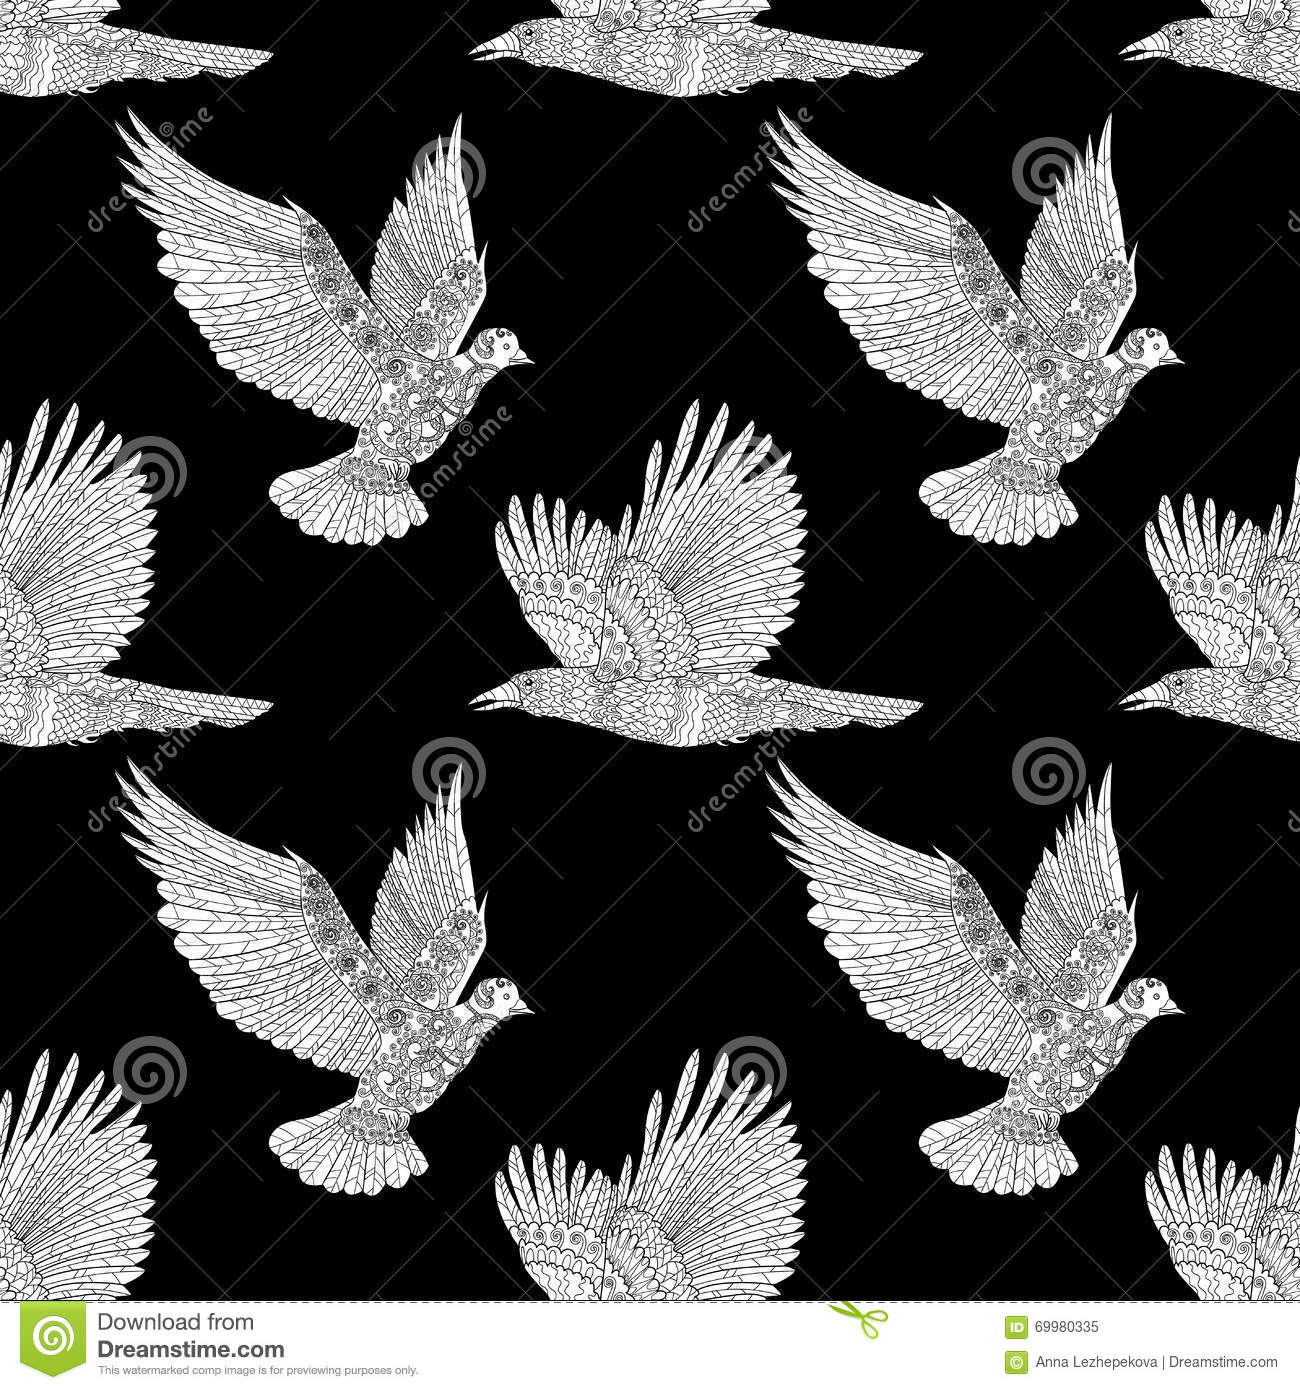 Seamless Pattern With Flying Raven And Dove High Details Adult Anti Stress Coloring Page Birds Black White Hand Drawn Doodle Bird